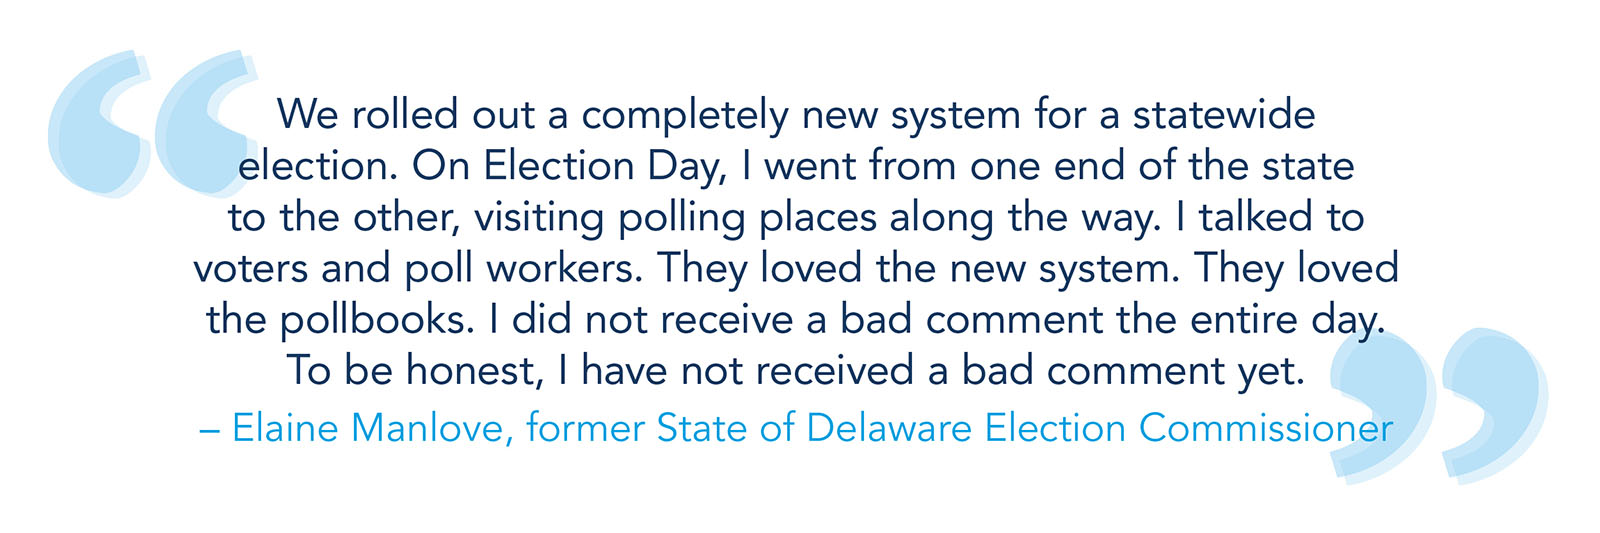 """""""We rolled out a completely new system for a statewide election. On Election Day, I went from one end of the state to the other, visiting polling places along the way. I talked to voters and poll workers. They loved the new system. They loved the pollbooks. I did not receive a bad comment the entire day. To be honest, I have not received a bad comment yet."""" -- Elaine Manlove, former State of Delaware Election Commissioner"""